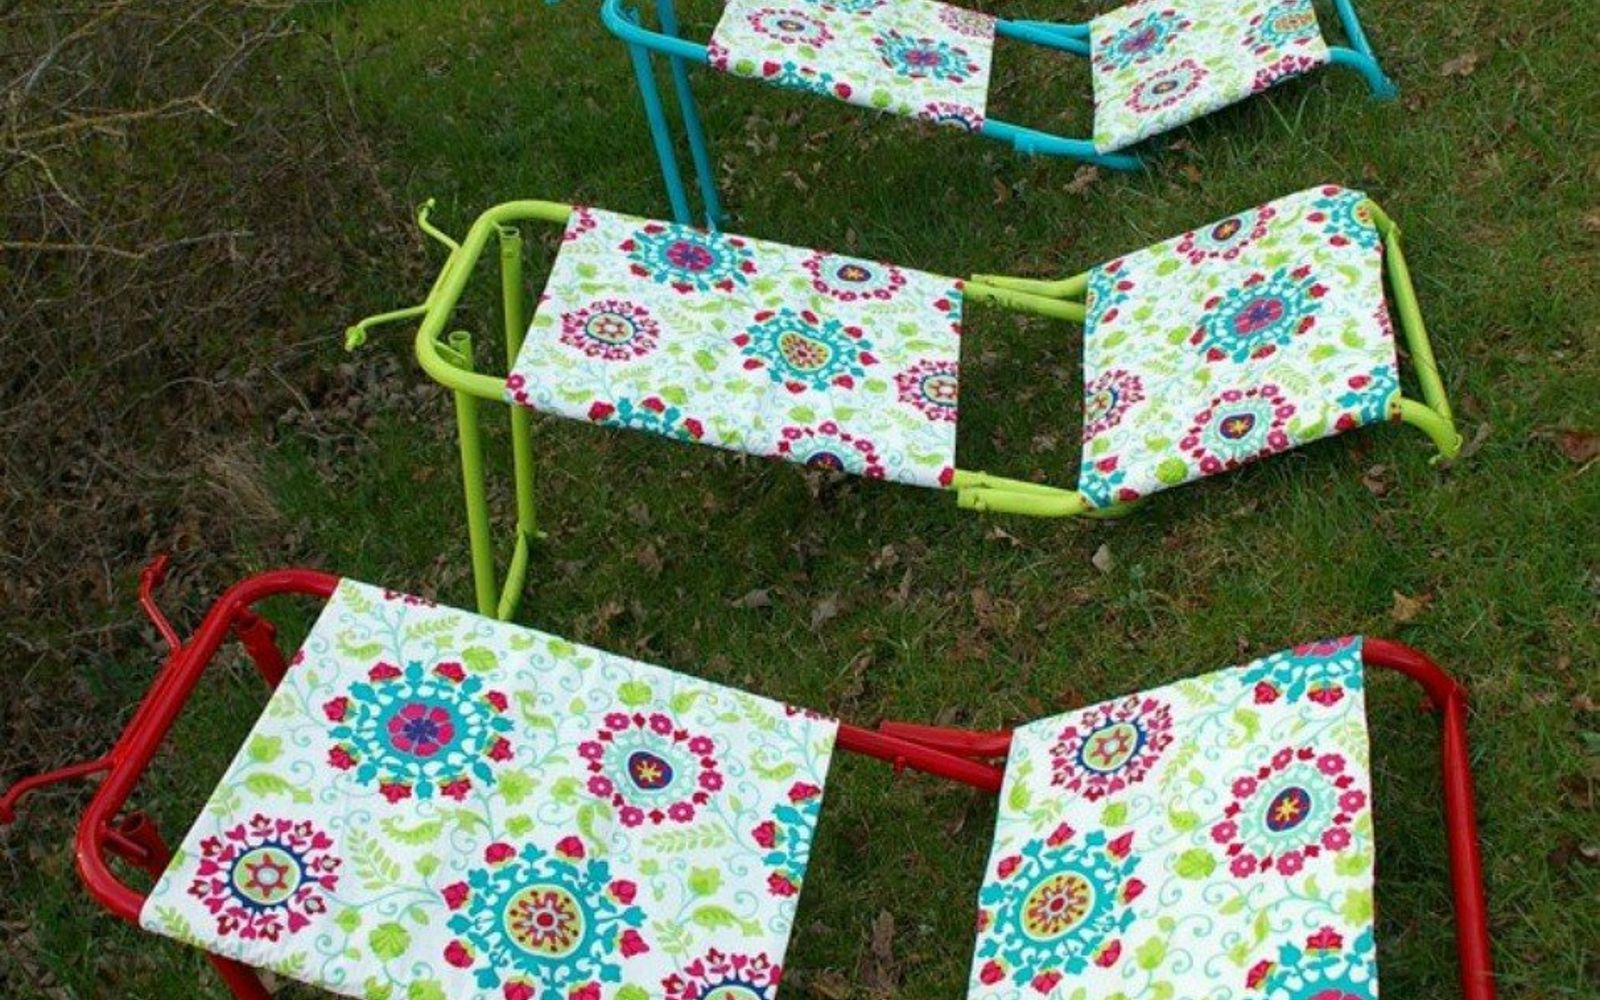 s 9 genius decorating hacks using tablecloths, repurposing upcycling, Use vinyl tablecloths to cover yard loungers